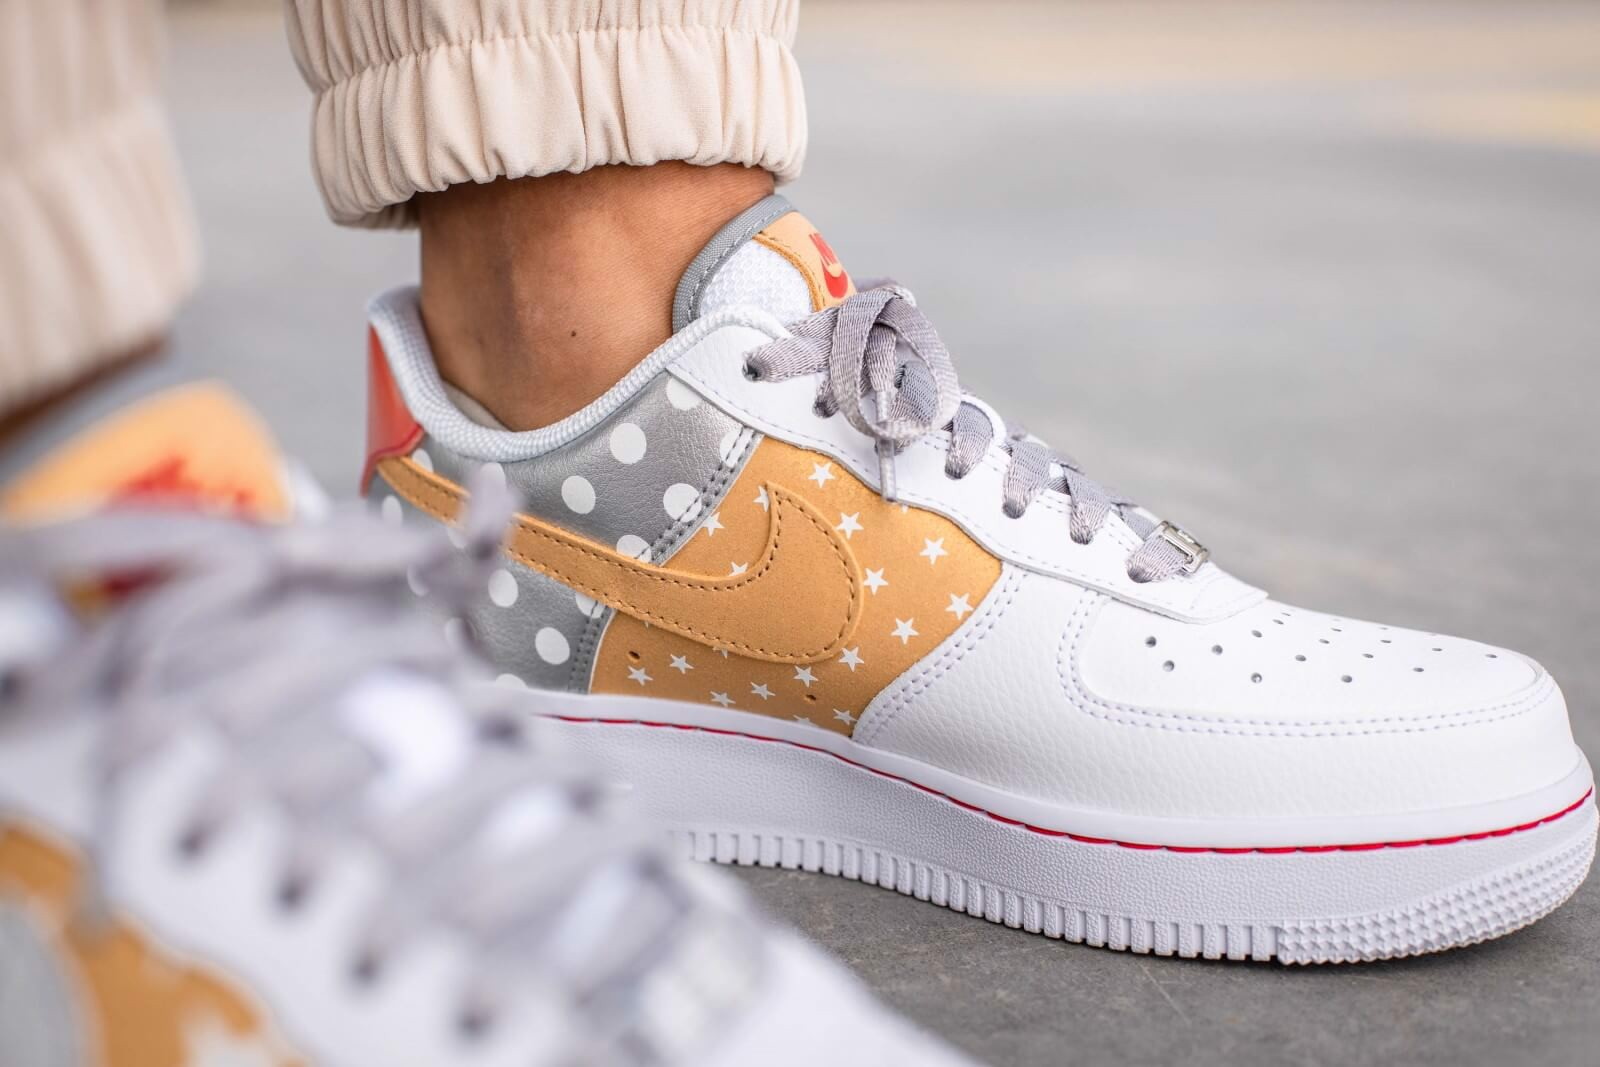 Nike Wmns Air Force 1 Low 'Metallic Gold' CT3437-100